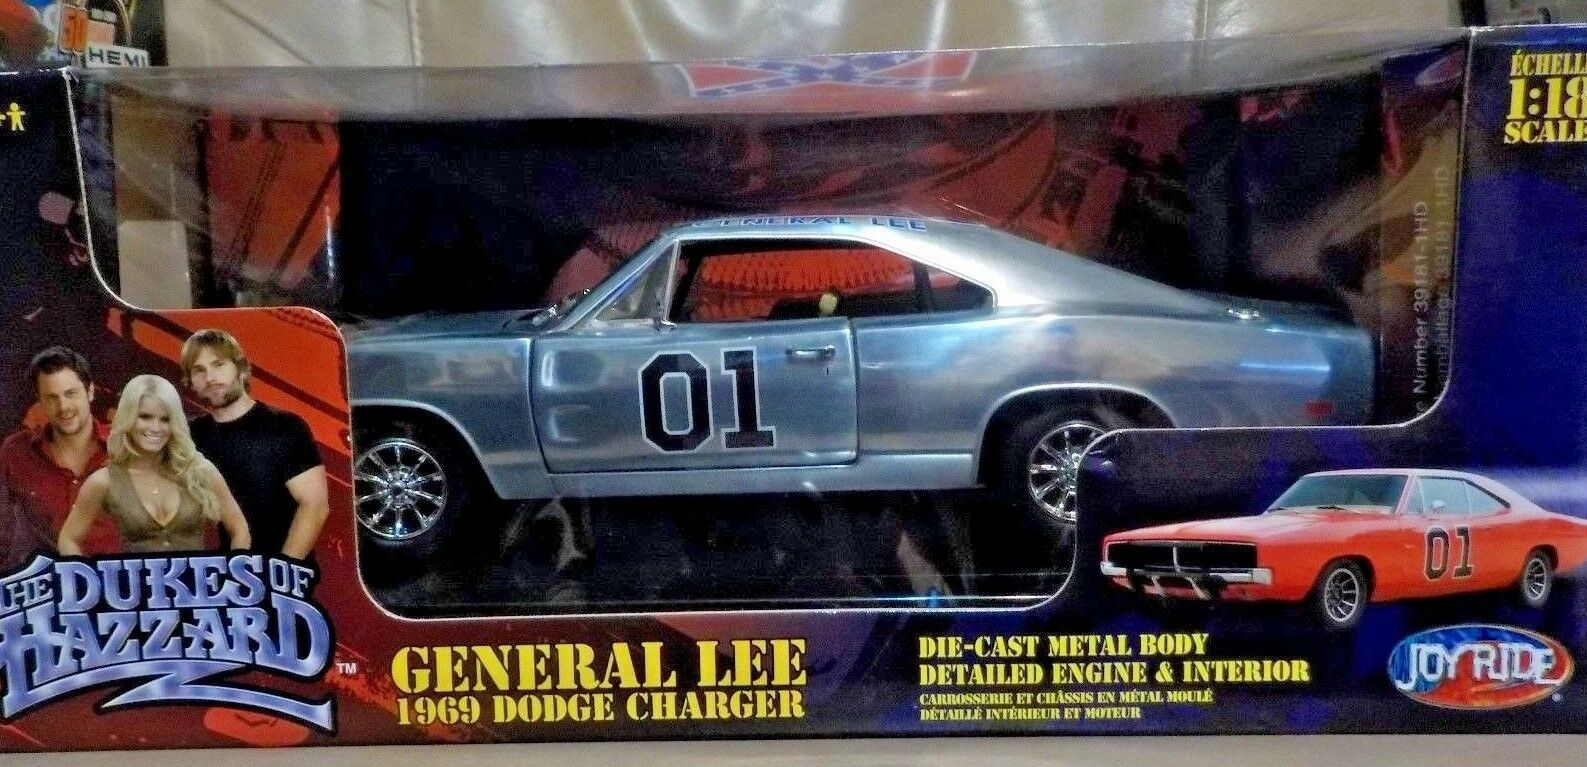 1 18 DIECAST JOYRIDE RC2 GENERAL LEE  CHASE CAR  THE DUKES of HAZZARD COUNTY